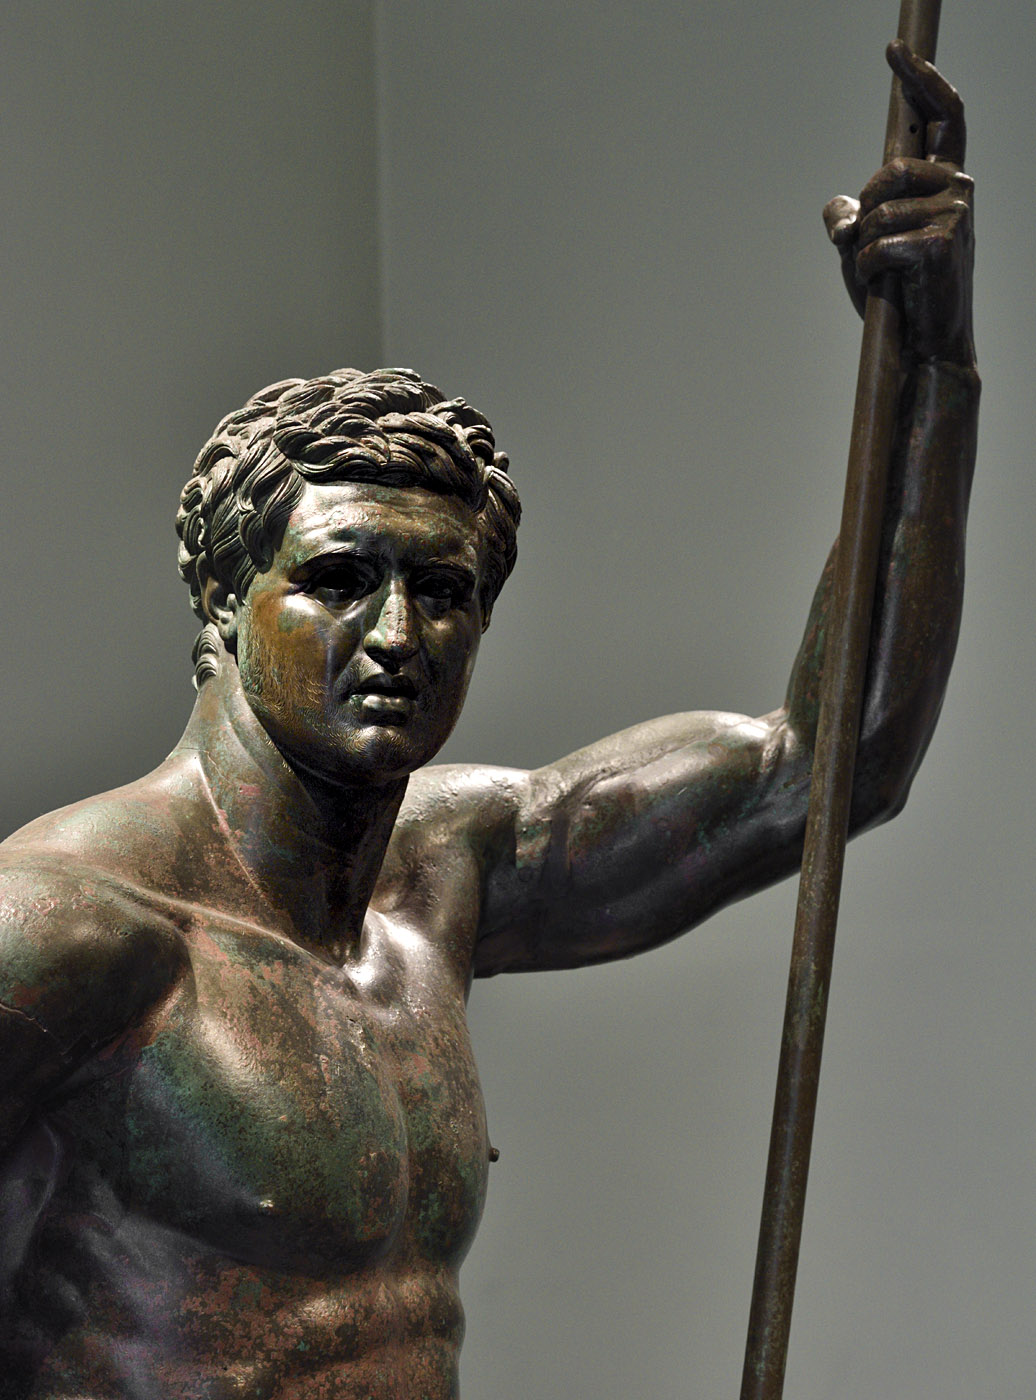 Hellenistic prince. Bronze. Mid-2nd cent. BCE. Inv. No. 1049. Rome, Roman National Museum, Palazzo Massimo alle Terme